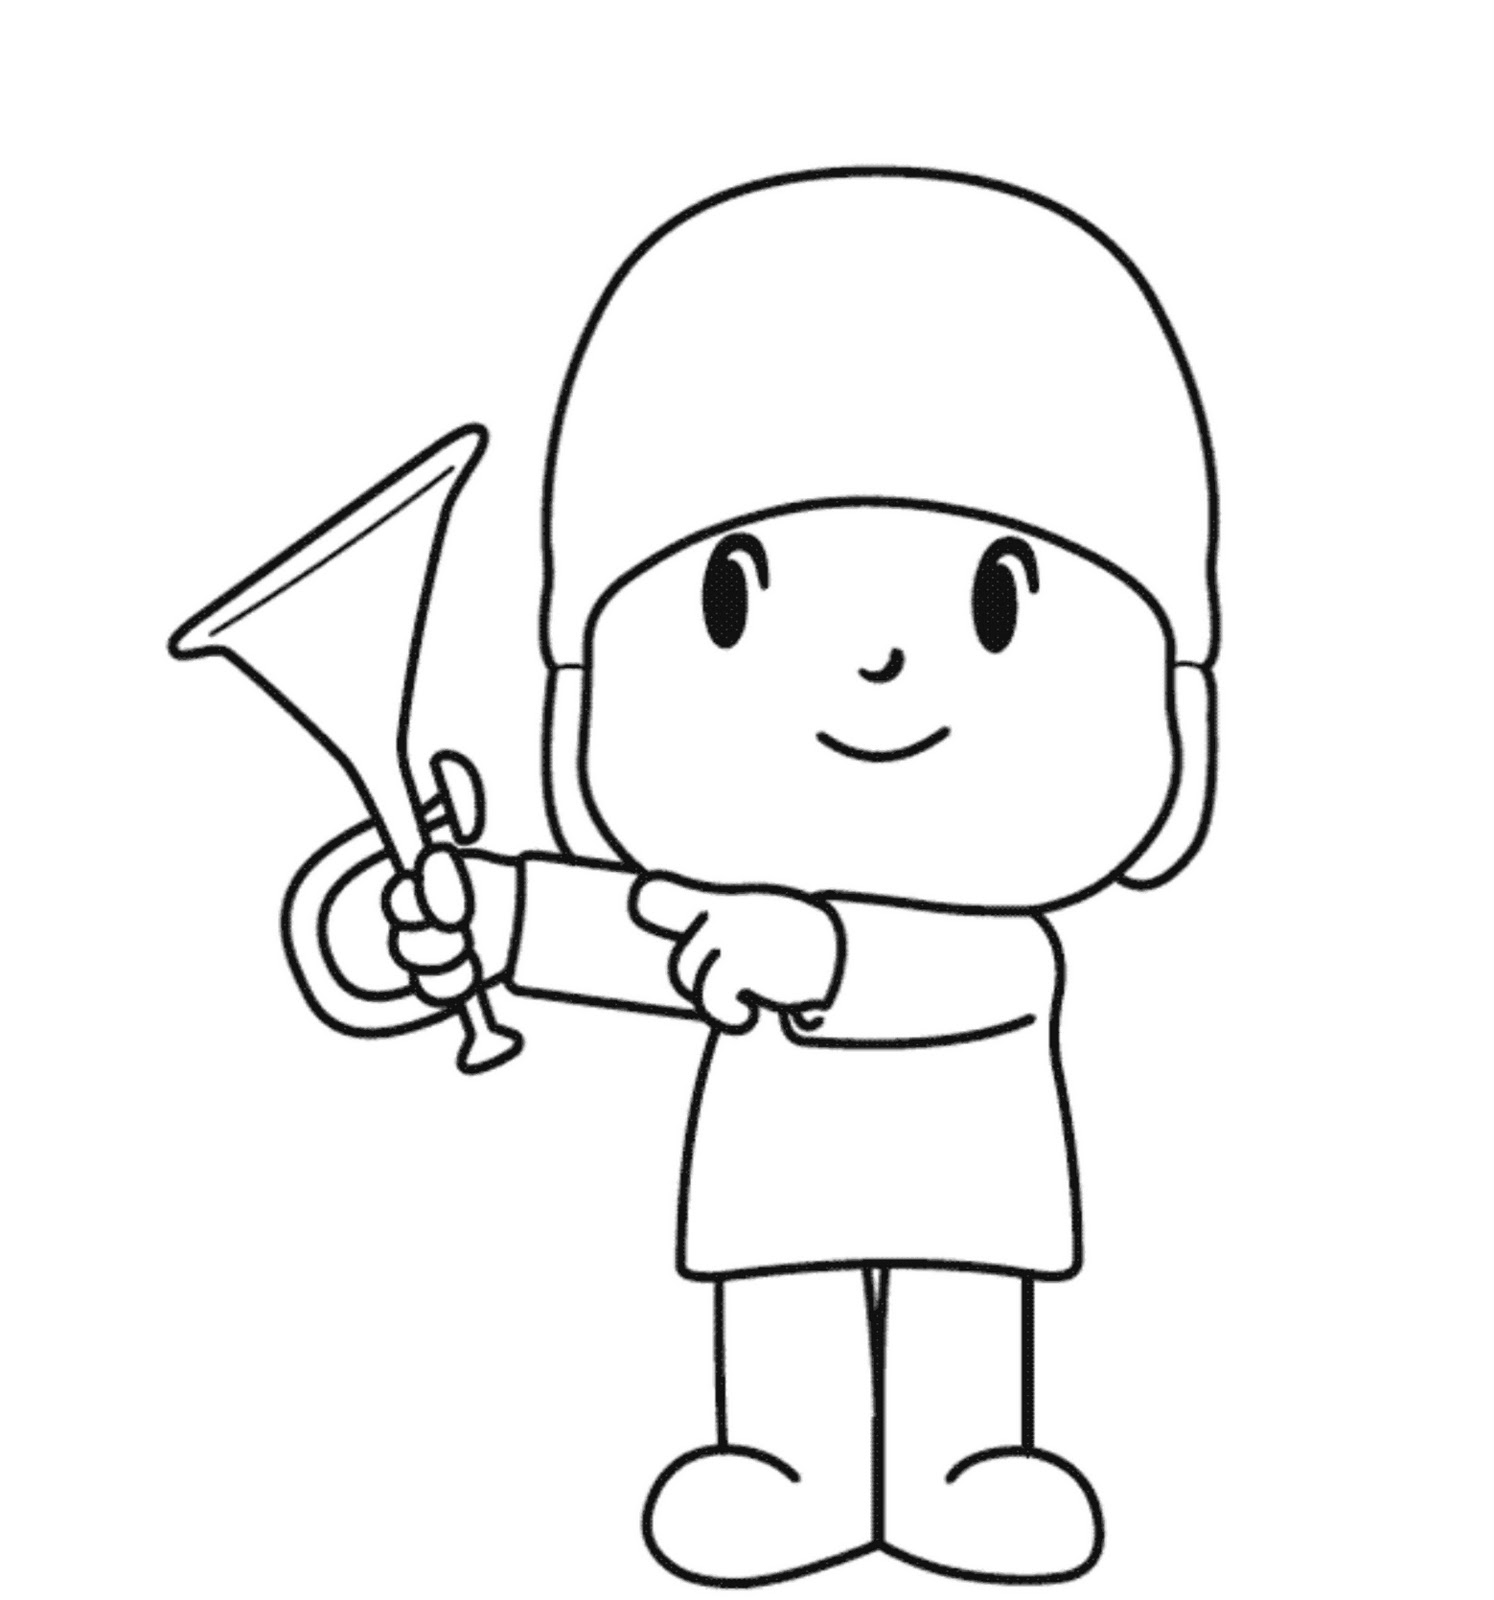 pocoyo printable coloring pages pocoyo coloring page tricot et crochet to color tricot pages coloring printable pocoyo